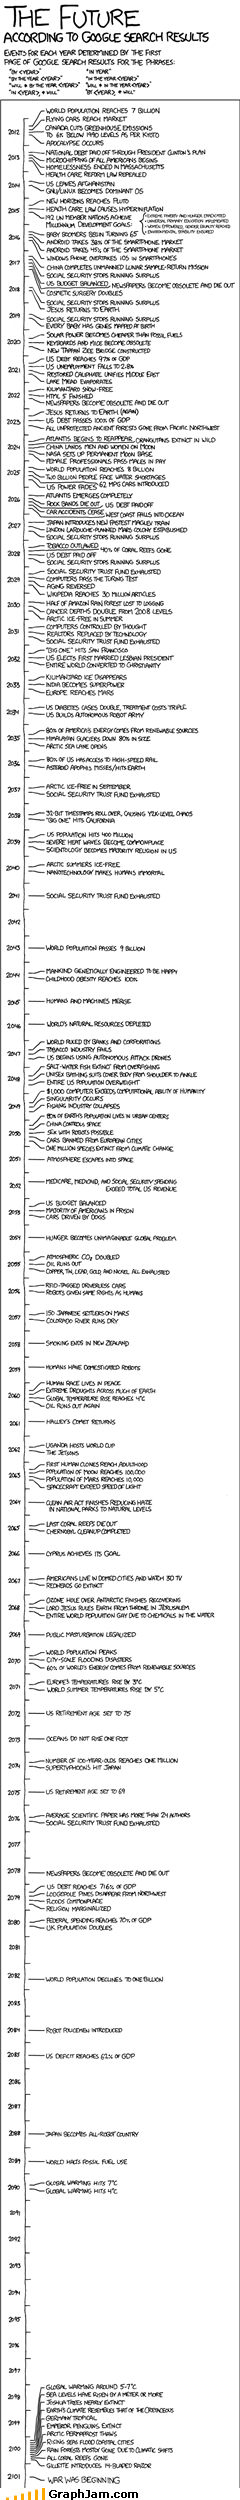 earth future infographic timeline xkcd - 4667651584